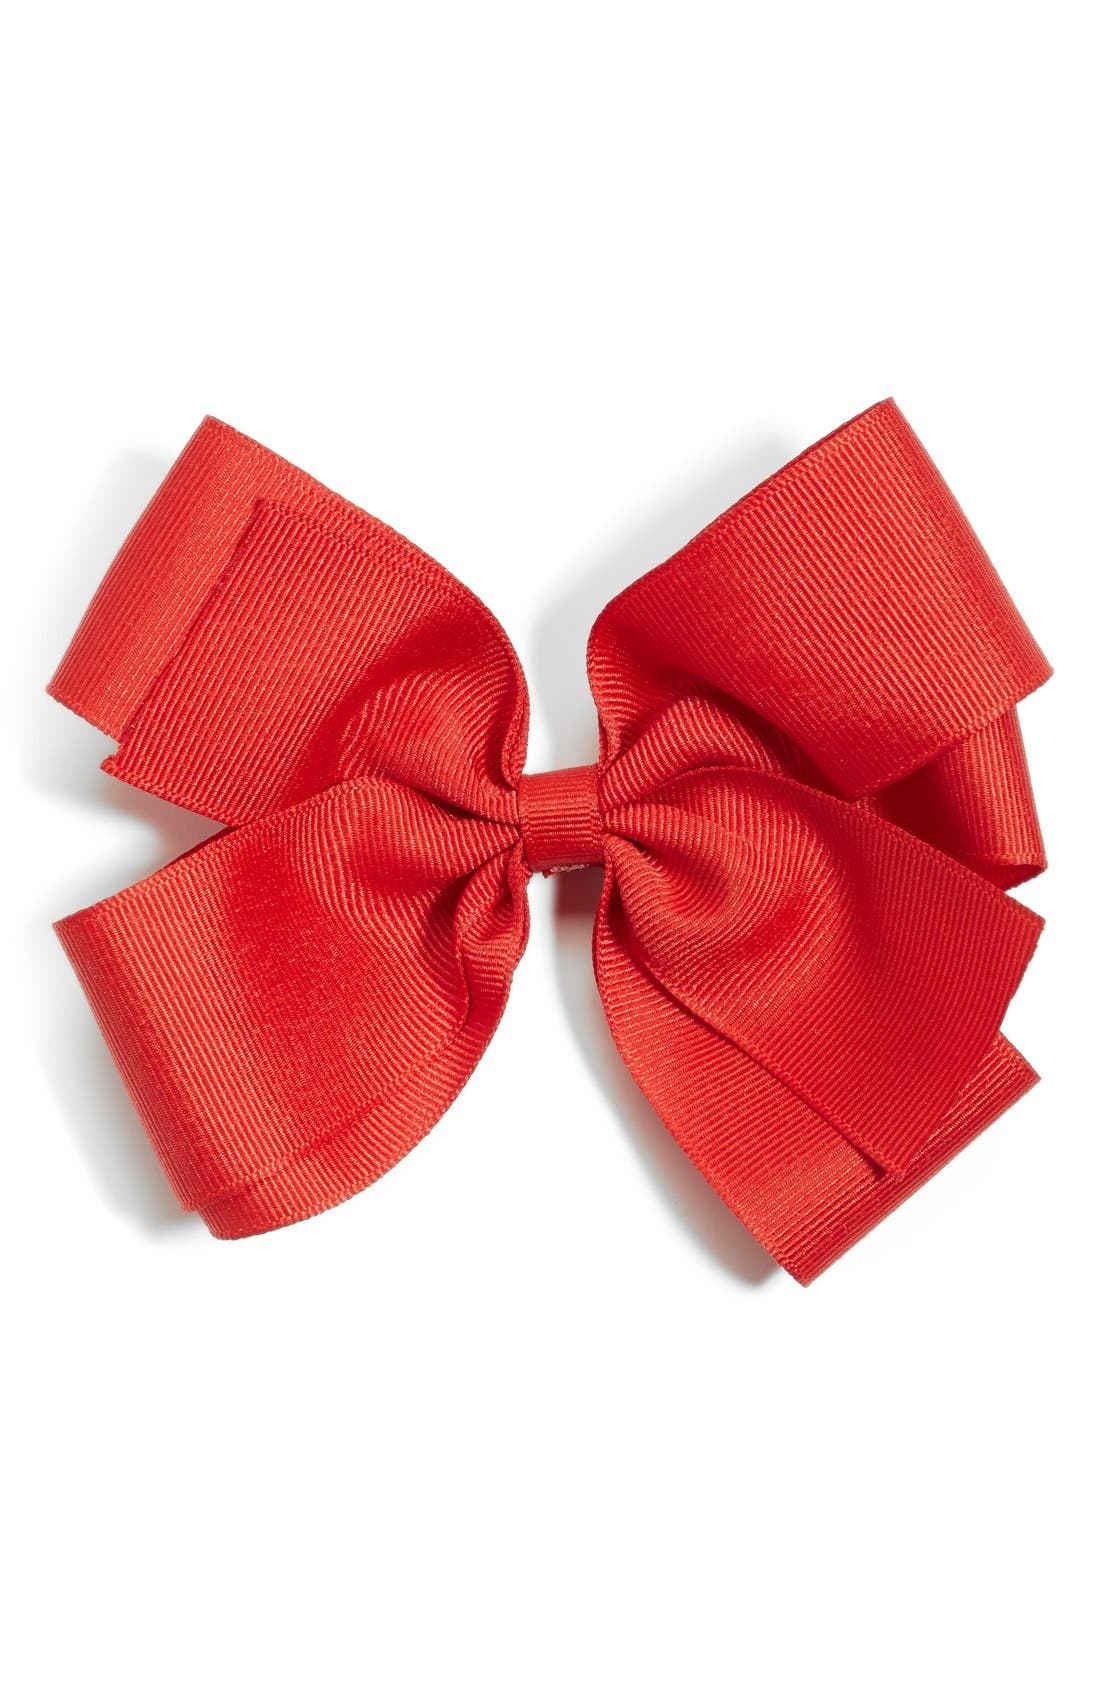 Grosgrain Bow Clip,                             Main thumbnail 1, color,                             Red